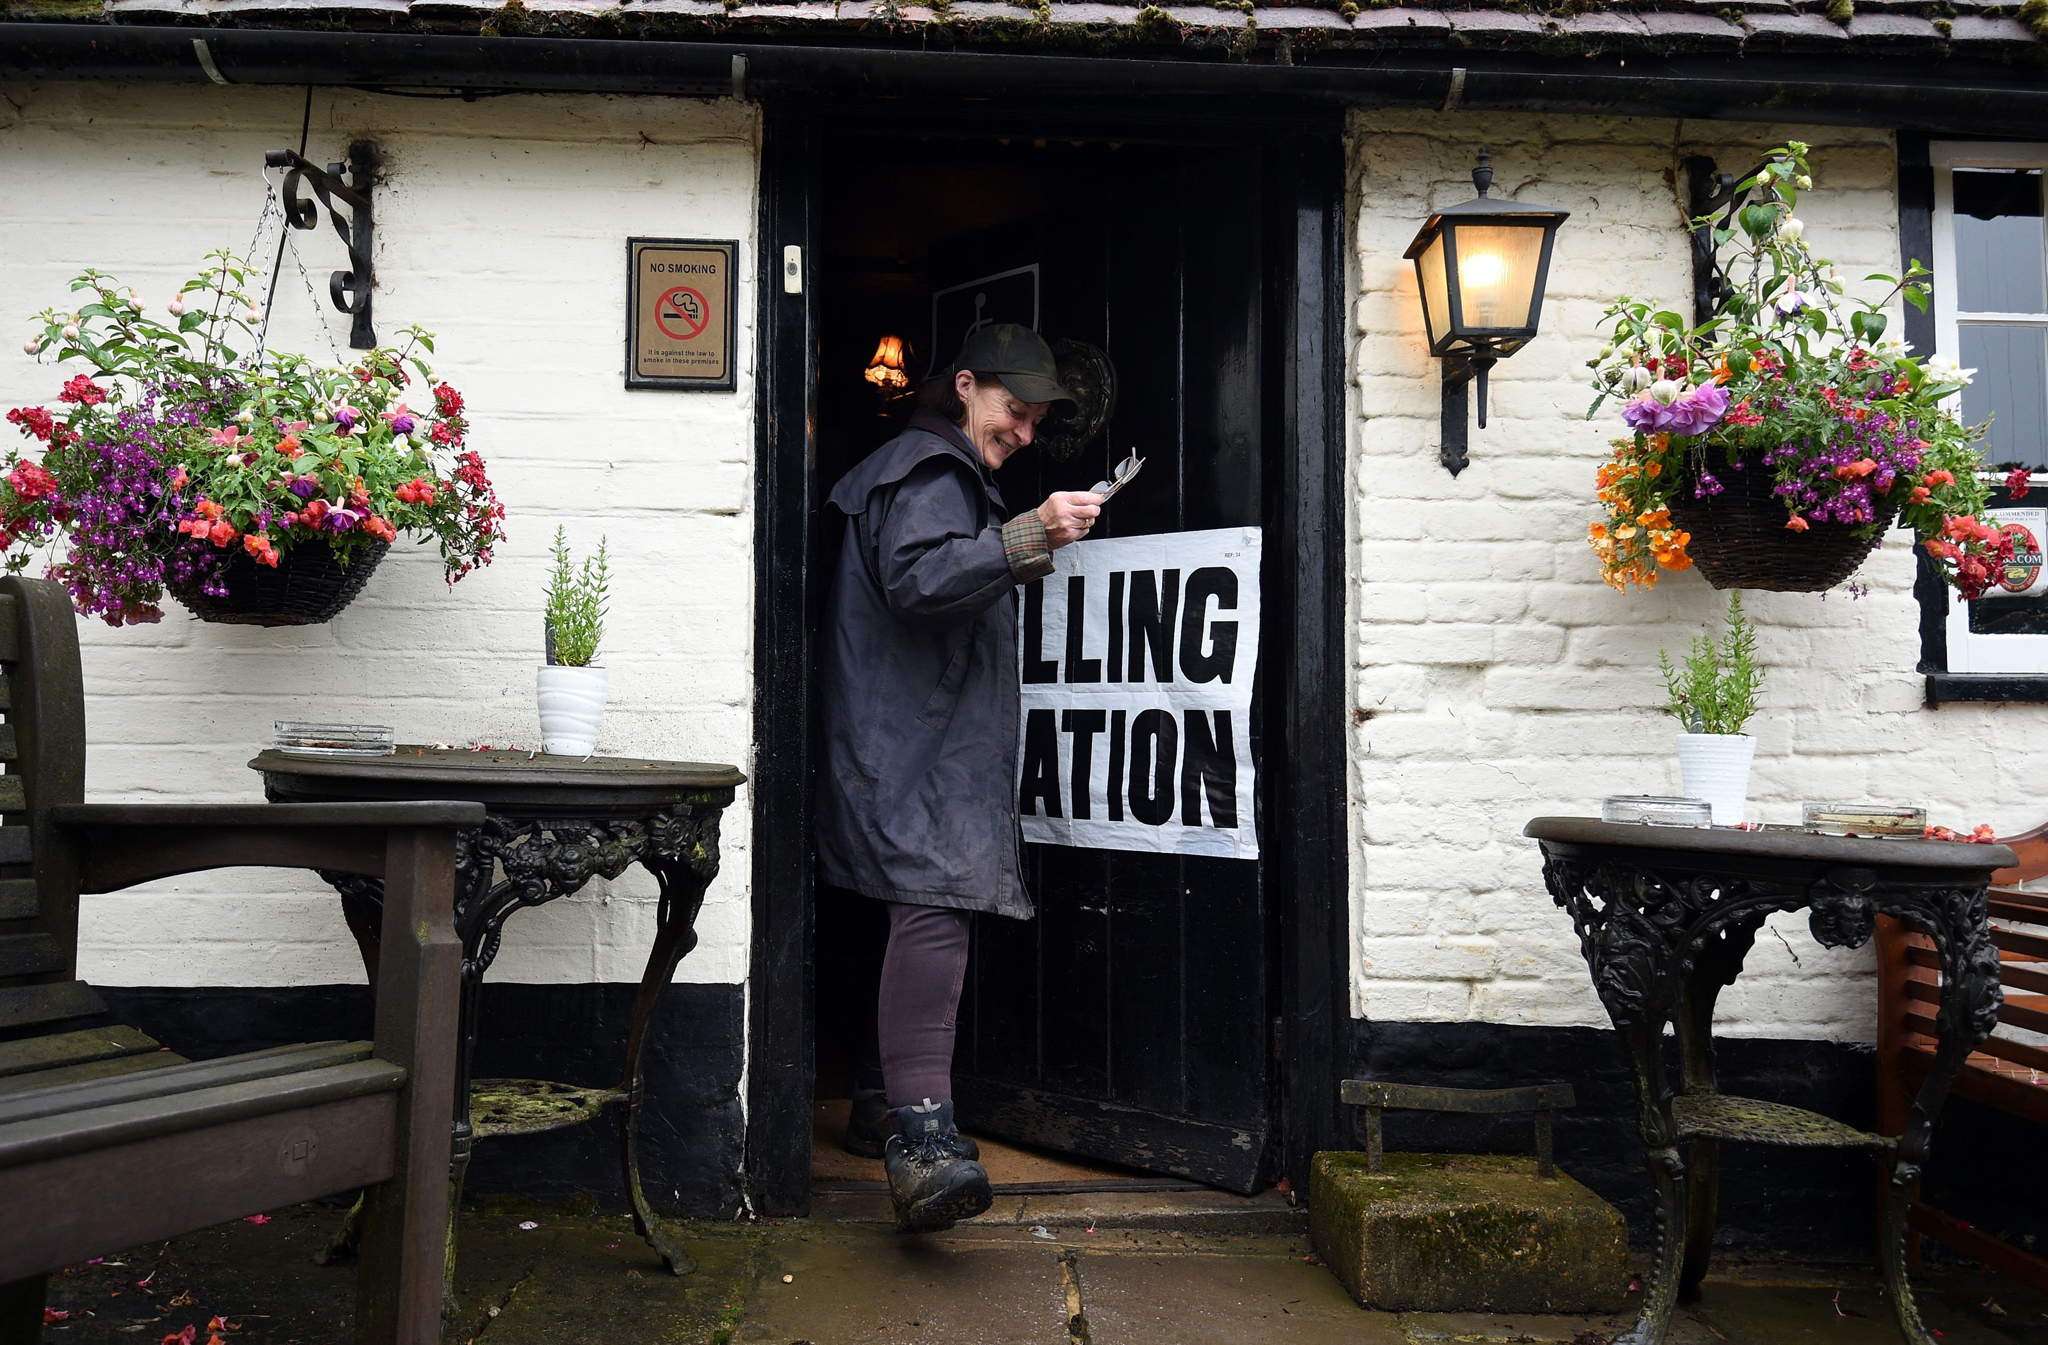 A member of the public leaves a polling station at the White Horse Inn in Priors Dean, Hampshire